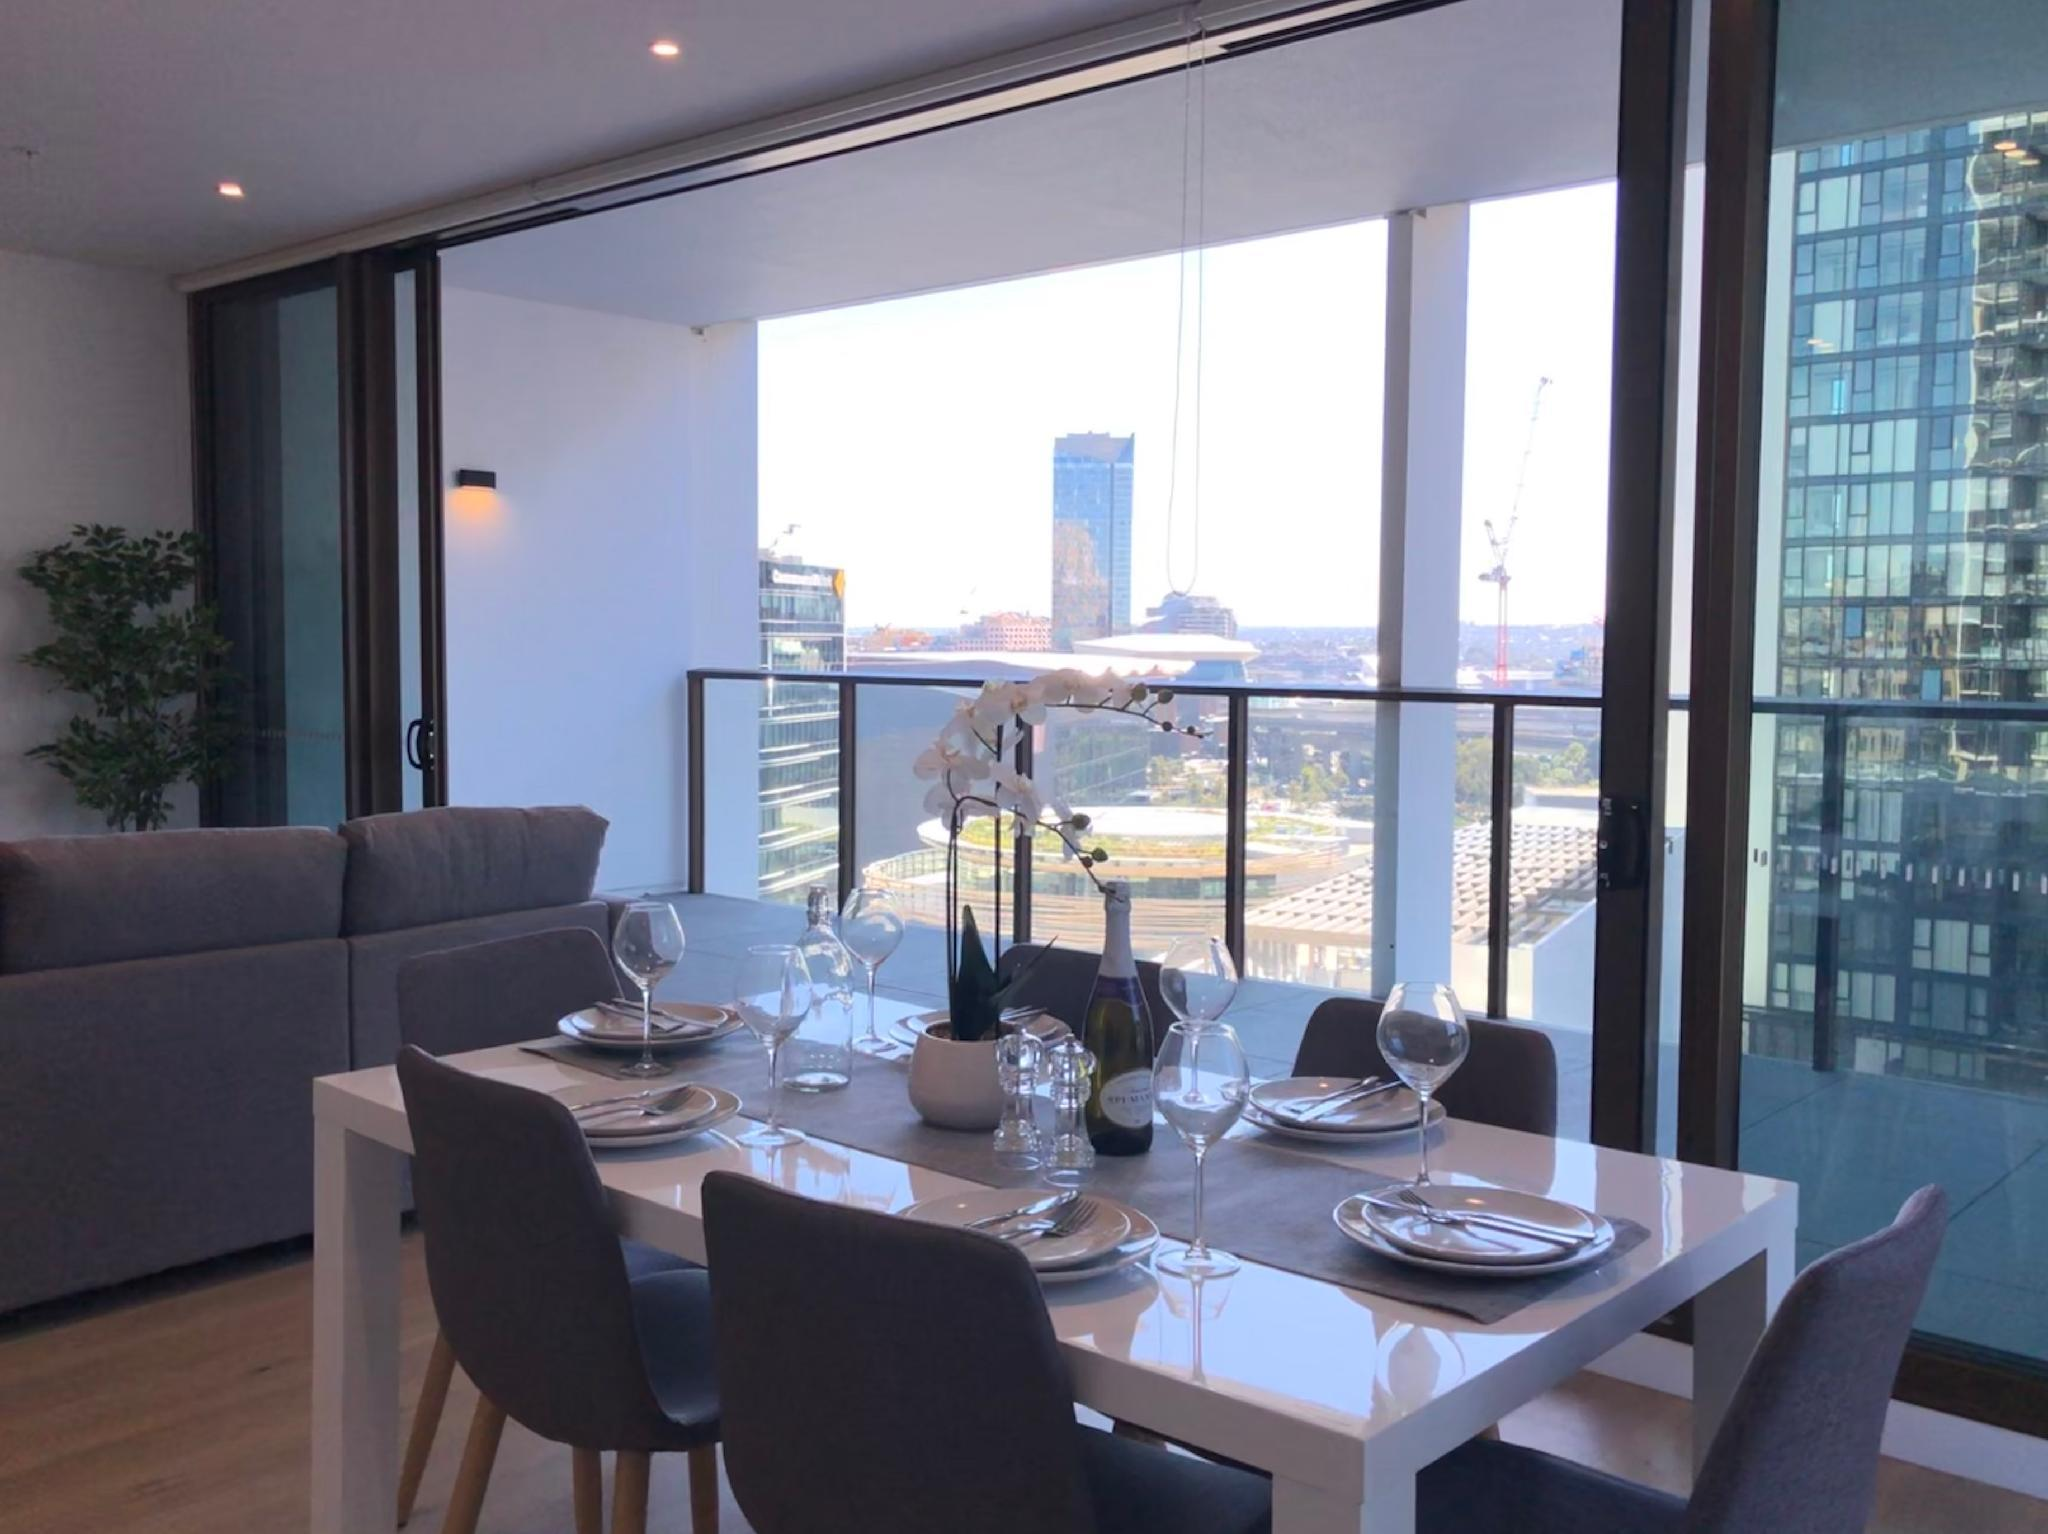 Premium Darling Harbour 2 BR With Fireworks View